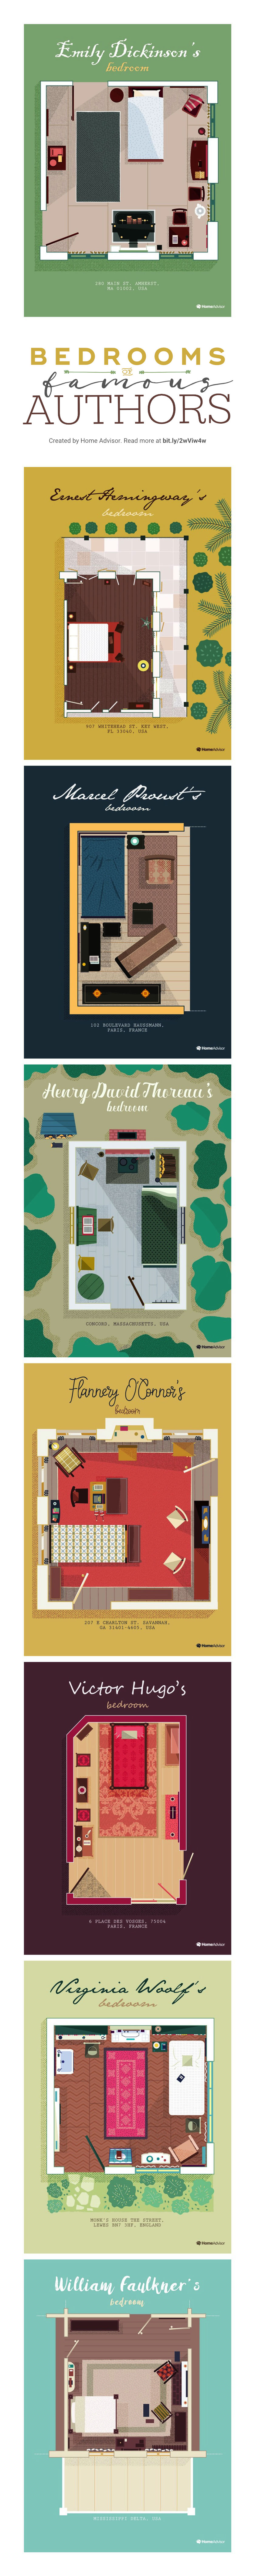 Bedrooms of famous writers #infographic